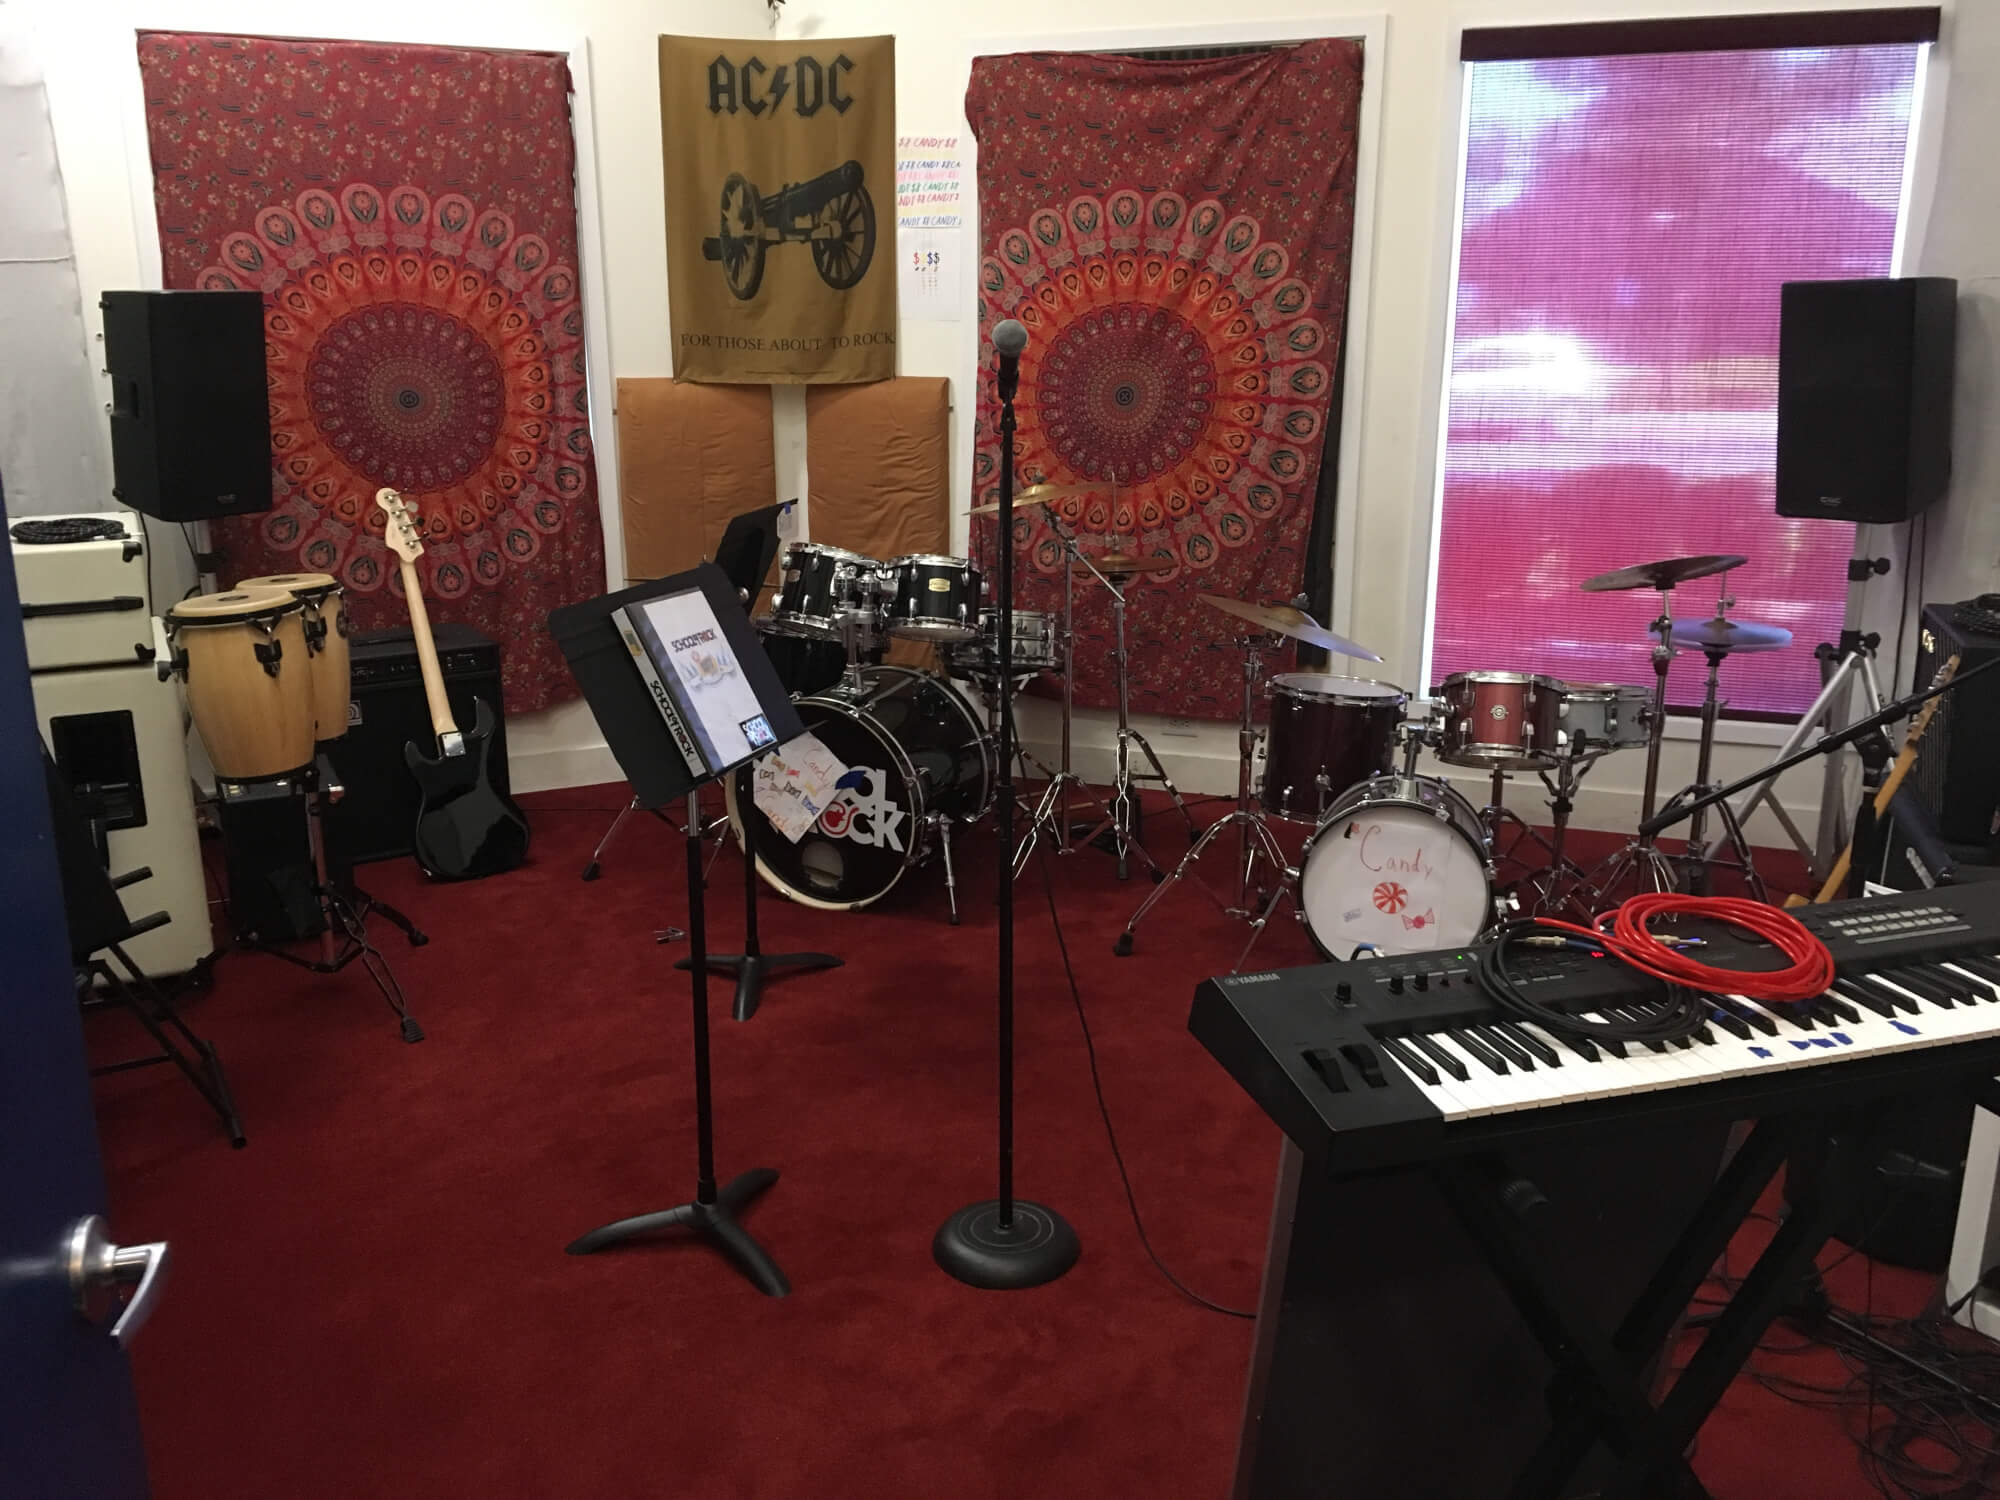 Our warfield rehearsal room.